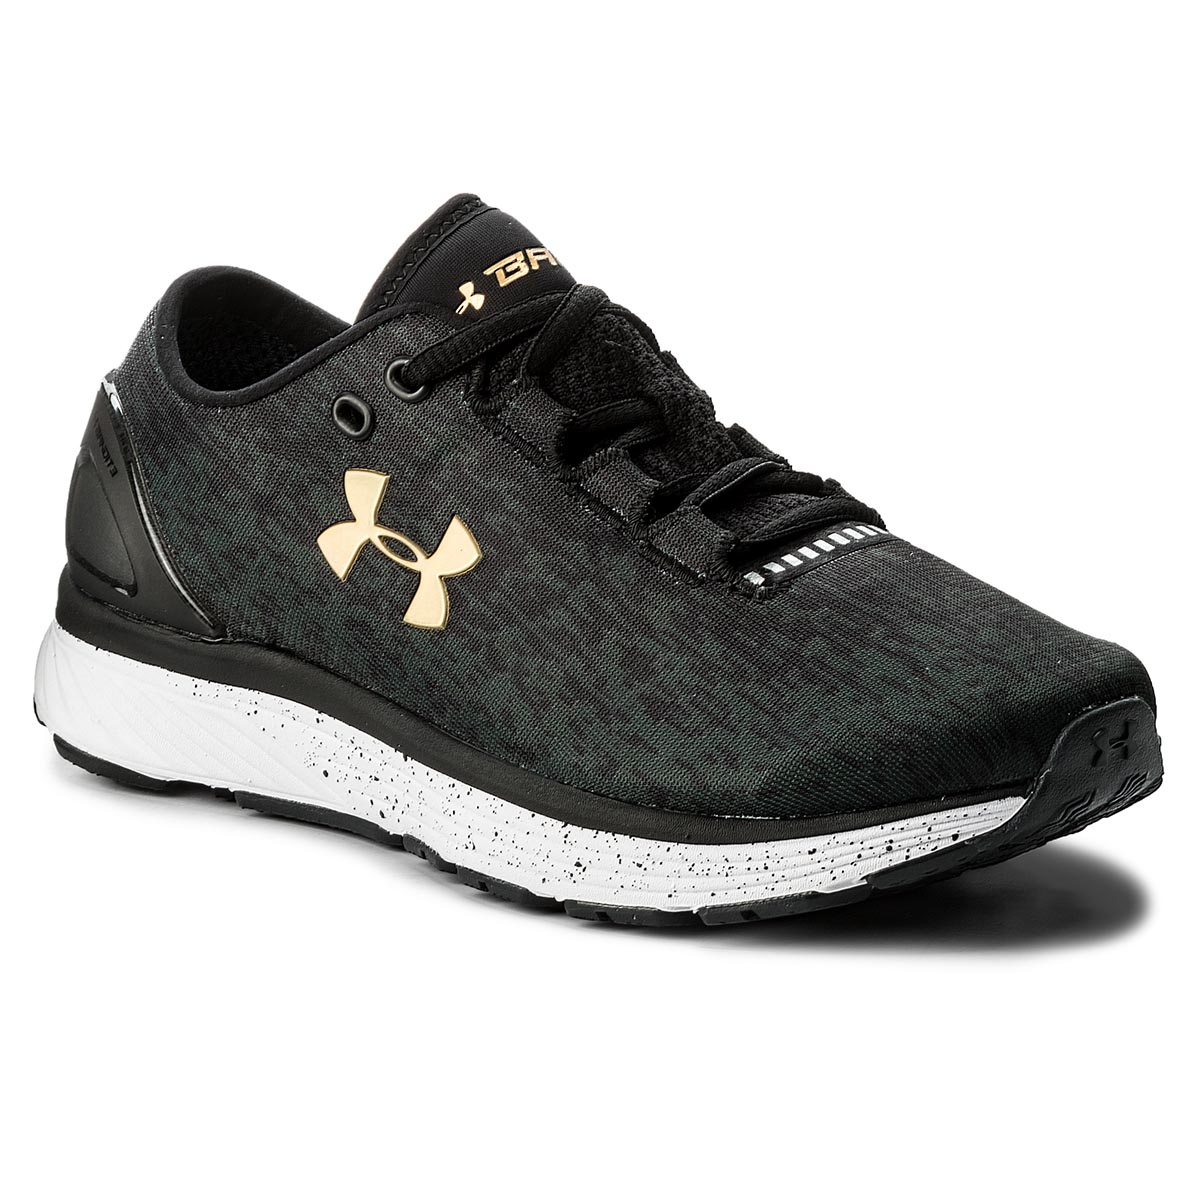 Buty UNDER ARMOUR - Ua W Charged Bandit 3 Ombre 3020120-001 Blk